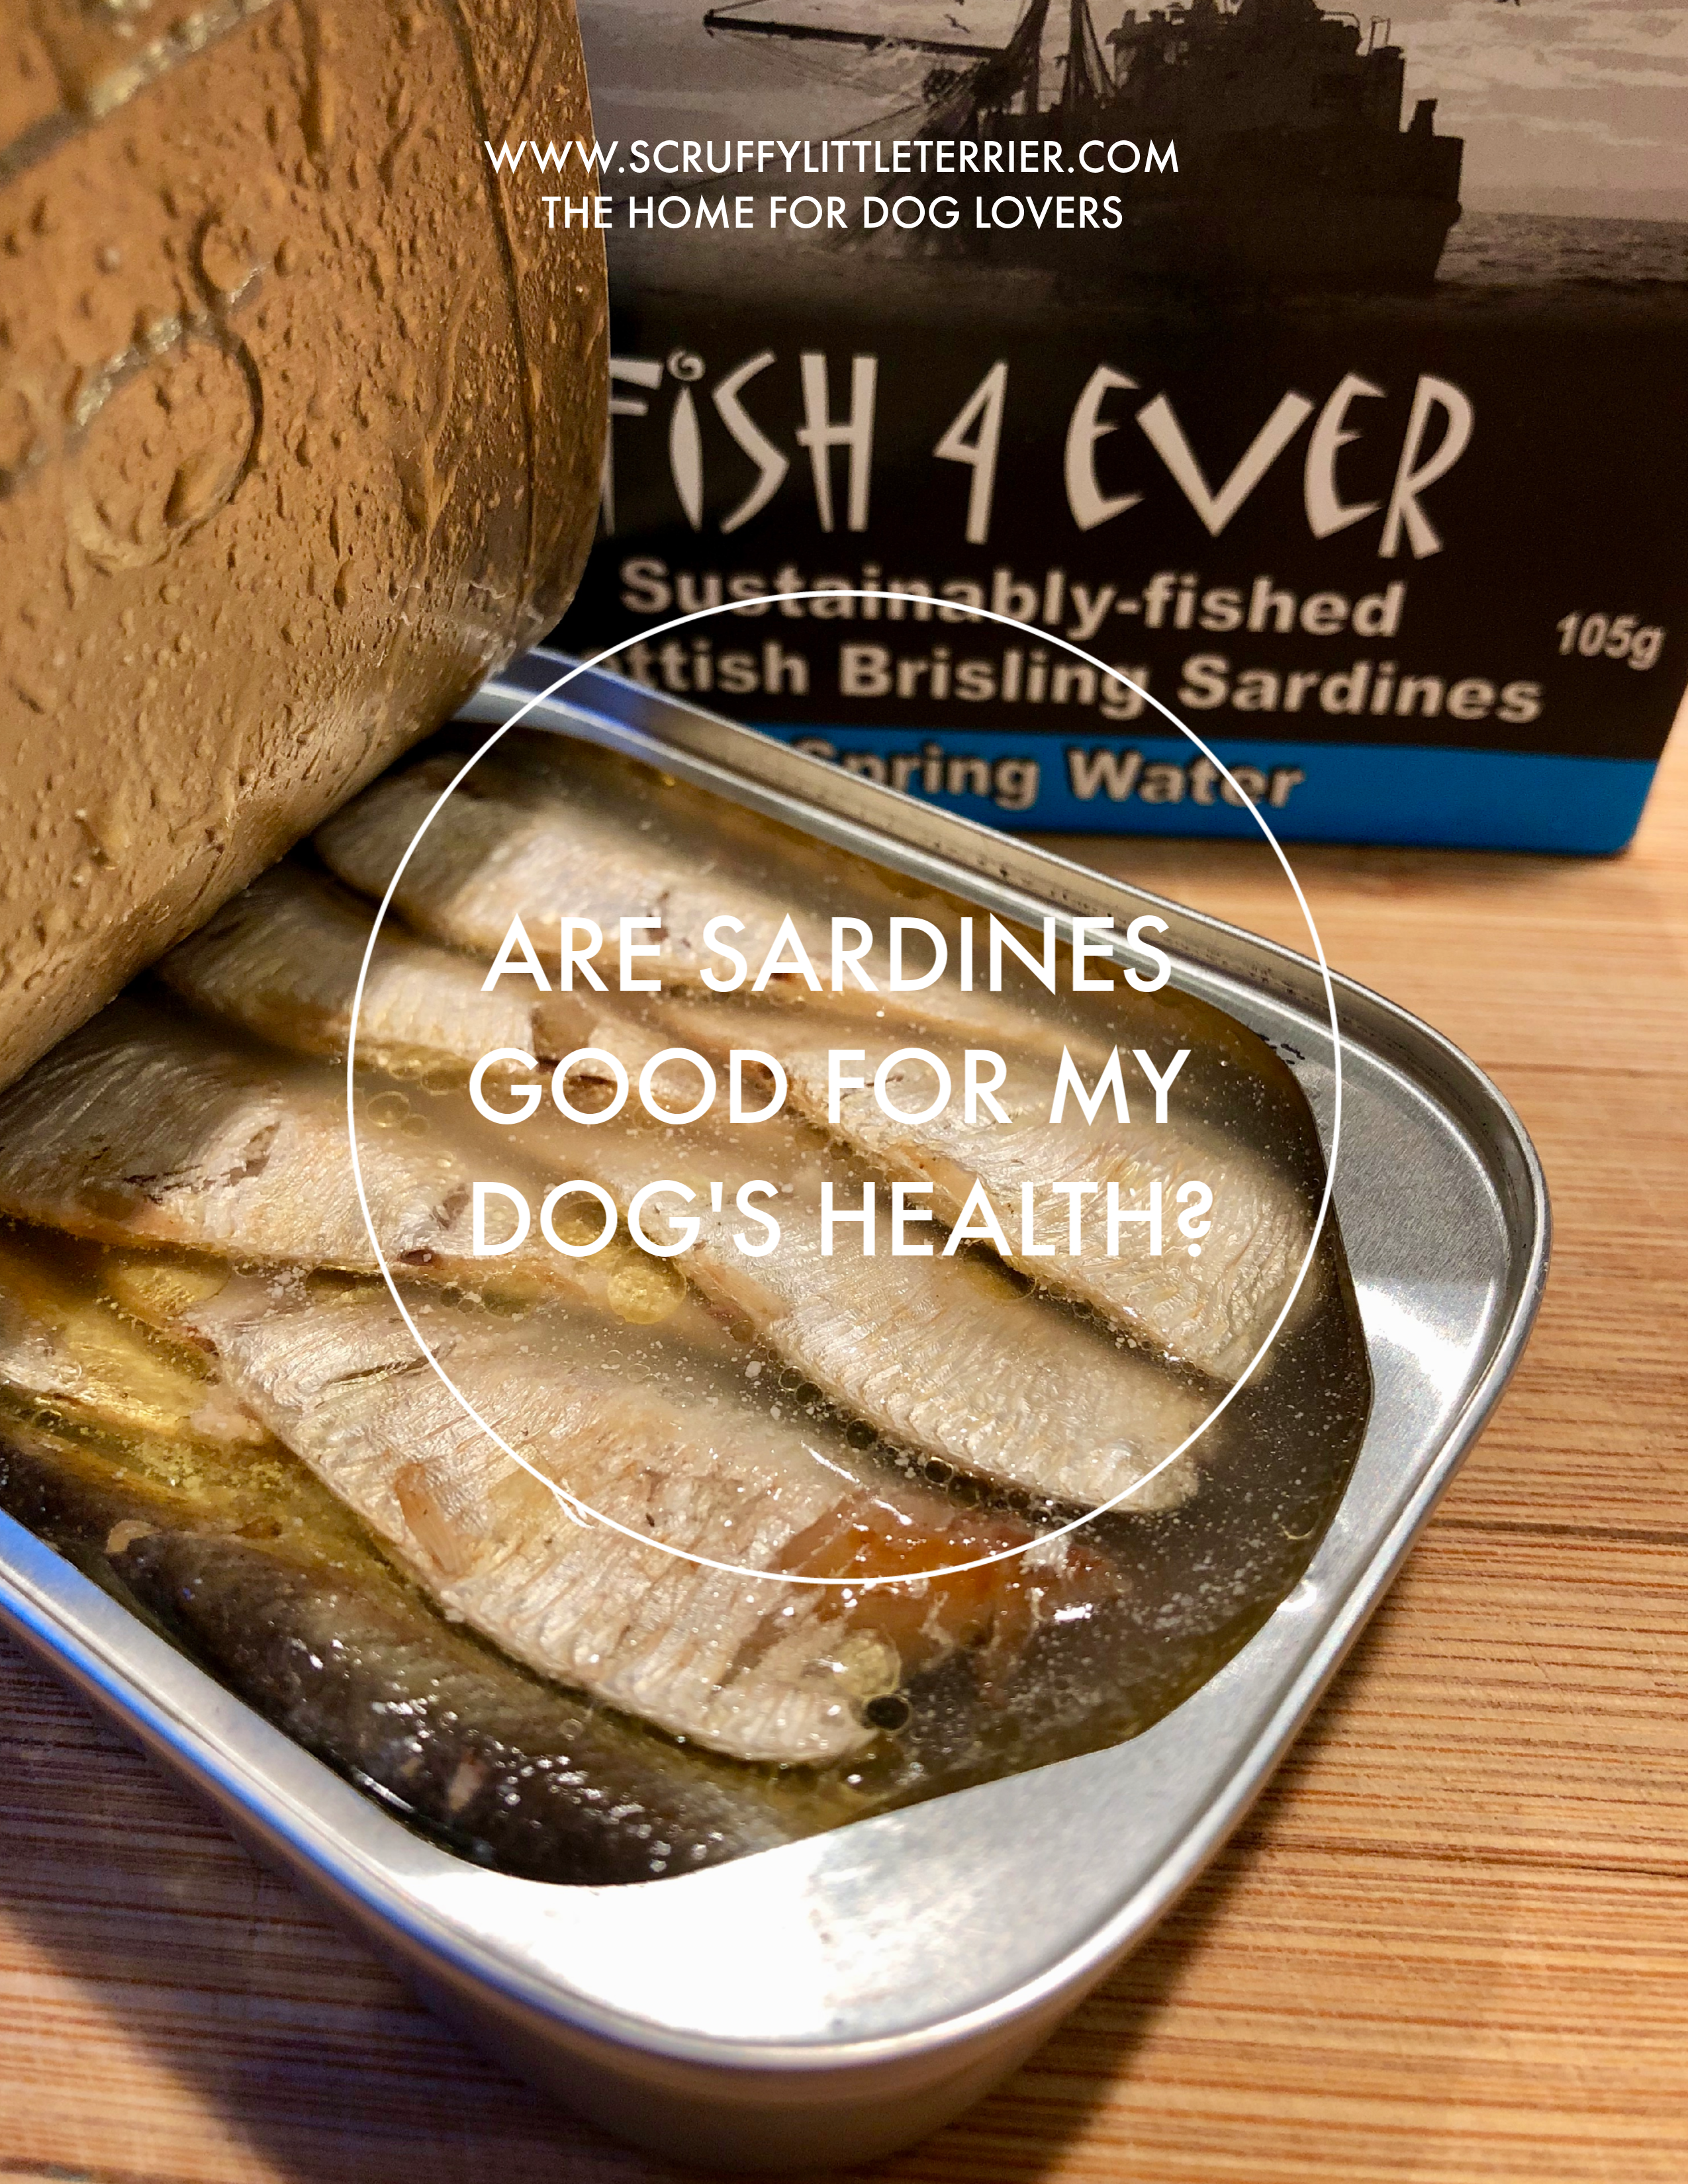 Are Sardines Good For My Dog's Health? {DogNutrition} #HealthyDog #DogTreats #DogHealth #Sardines #DogNutrition www.scruffylittleterrier.com